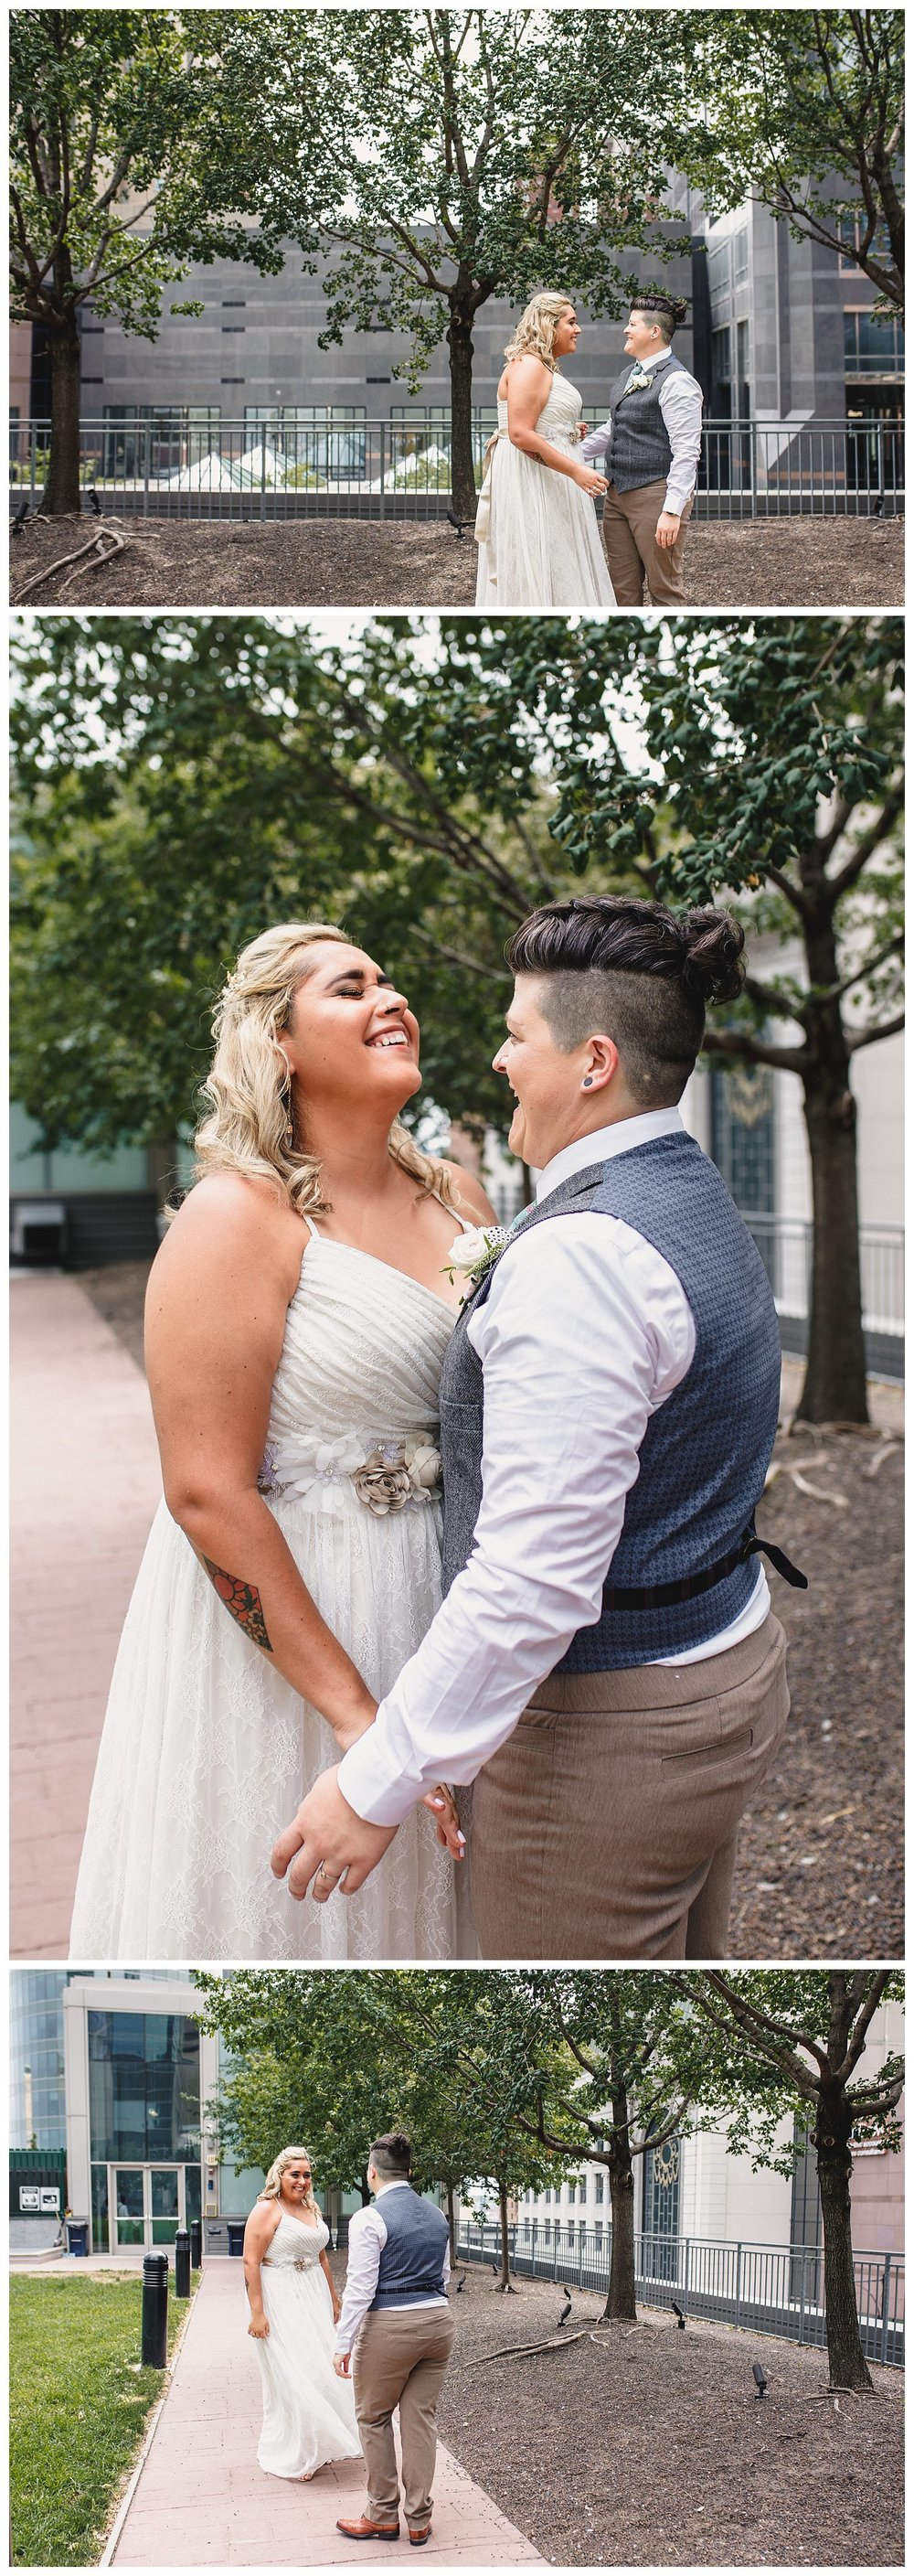 Kelsey_Diane_Photography_The_Vow_Exchange_Kansas_City_LGBT_Friendly_Wedding_Photographer_Kansas_City_Scout_Ica_0710.jpg